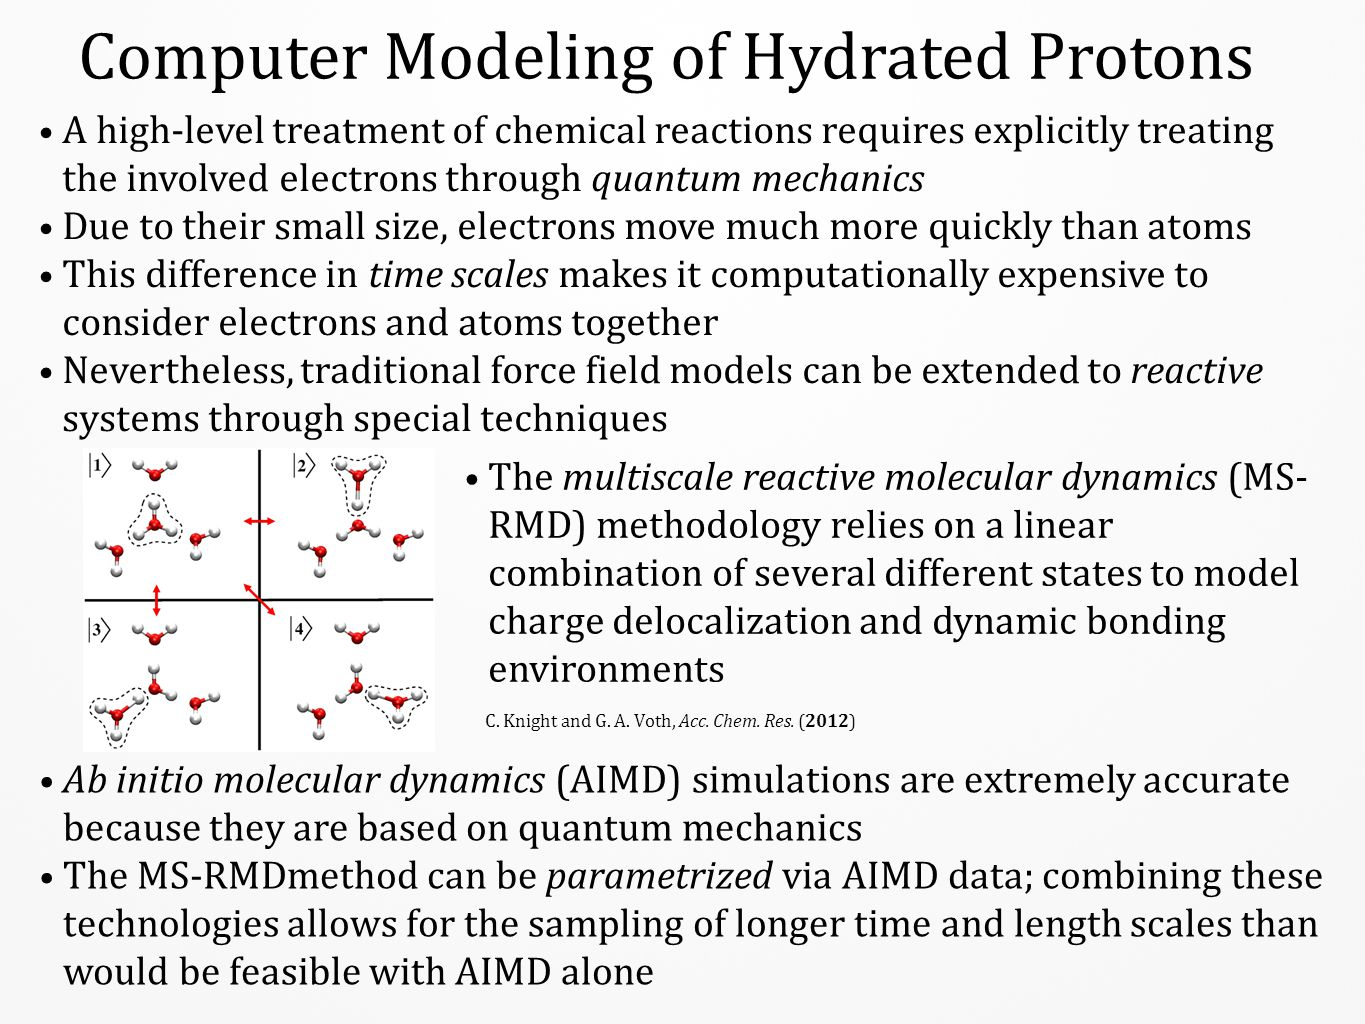 The Hydrated Proton has Two Predominant Forms The chemical identity of the hydrated proton is described by two predominant solvation structures: the Eigen (E) and Zundel (Z) cations H9O4+H9O4+ H5O2+H5O2+ Excess proton transfer between two water molecules occurs via the Zundel cation The Eigen cation is the most stable hydrated proton species in liquid water, as shown by the probability distribution the two largest MS-RMD amplitudes (L) and the free energy profile of the proton solvation structure in bulk water (R) E Z E Z J.